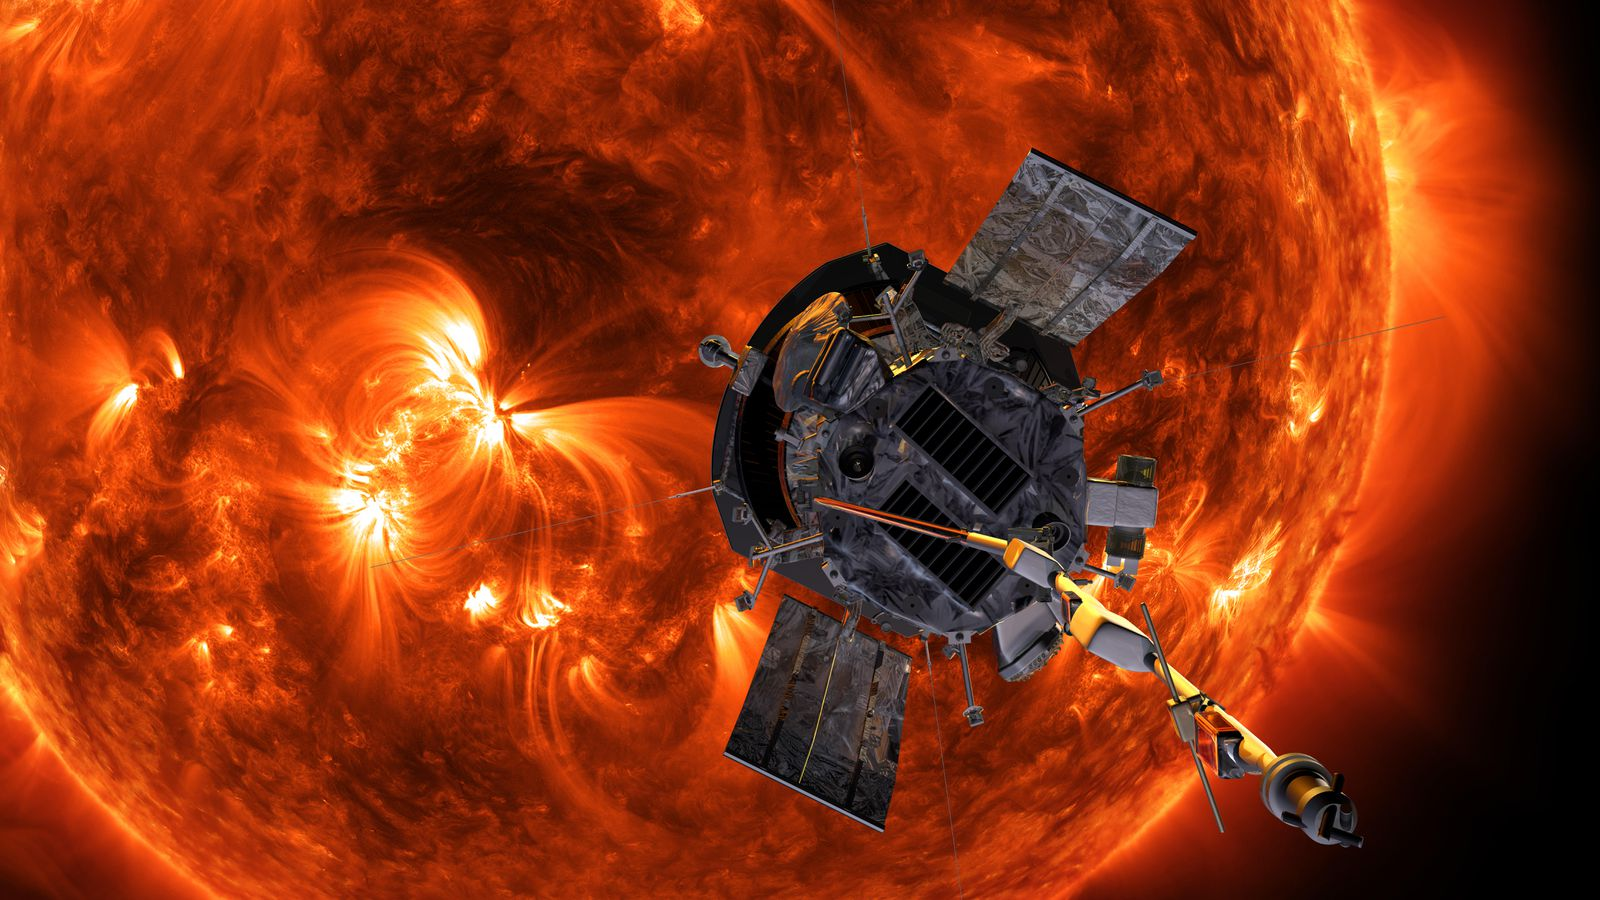 f811cf15 A solar probe is on its way to touch the sun. The Smithsonian built the  tool that will measure the sun without melting